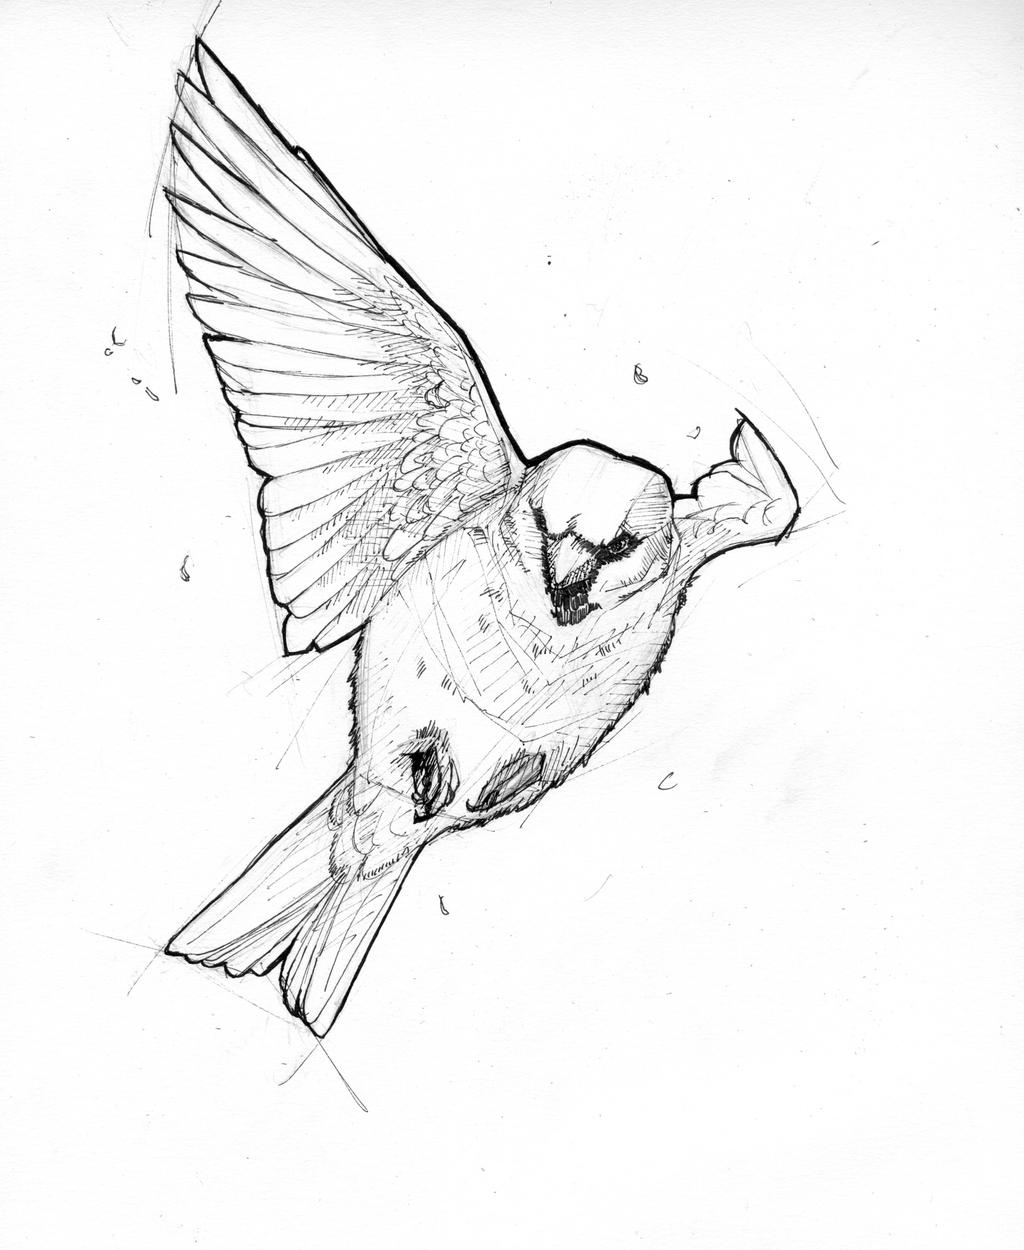 Sparrow - Ink by Bluecrow10 on DeviantArt